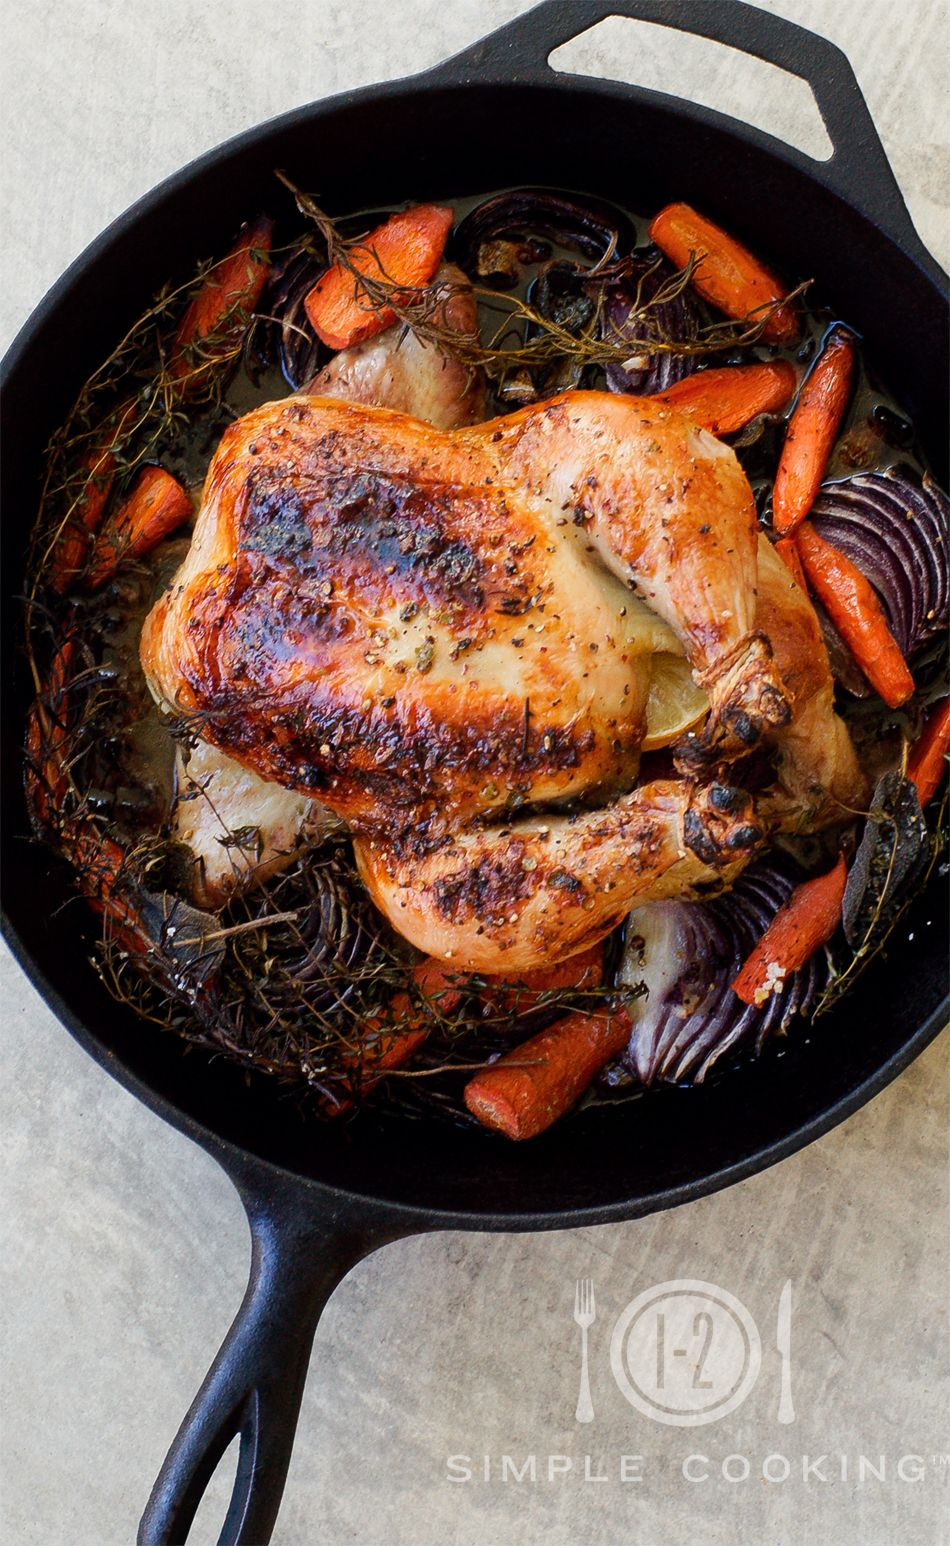 Dinner Tonight- Roast Chicken with carrots, onions, thyme and crack rub from my friend Katie.